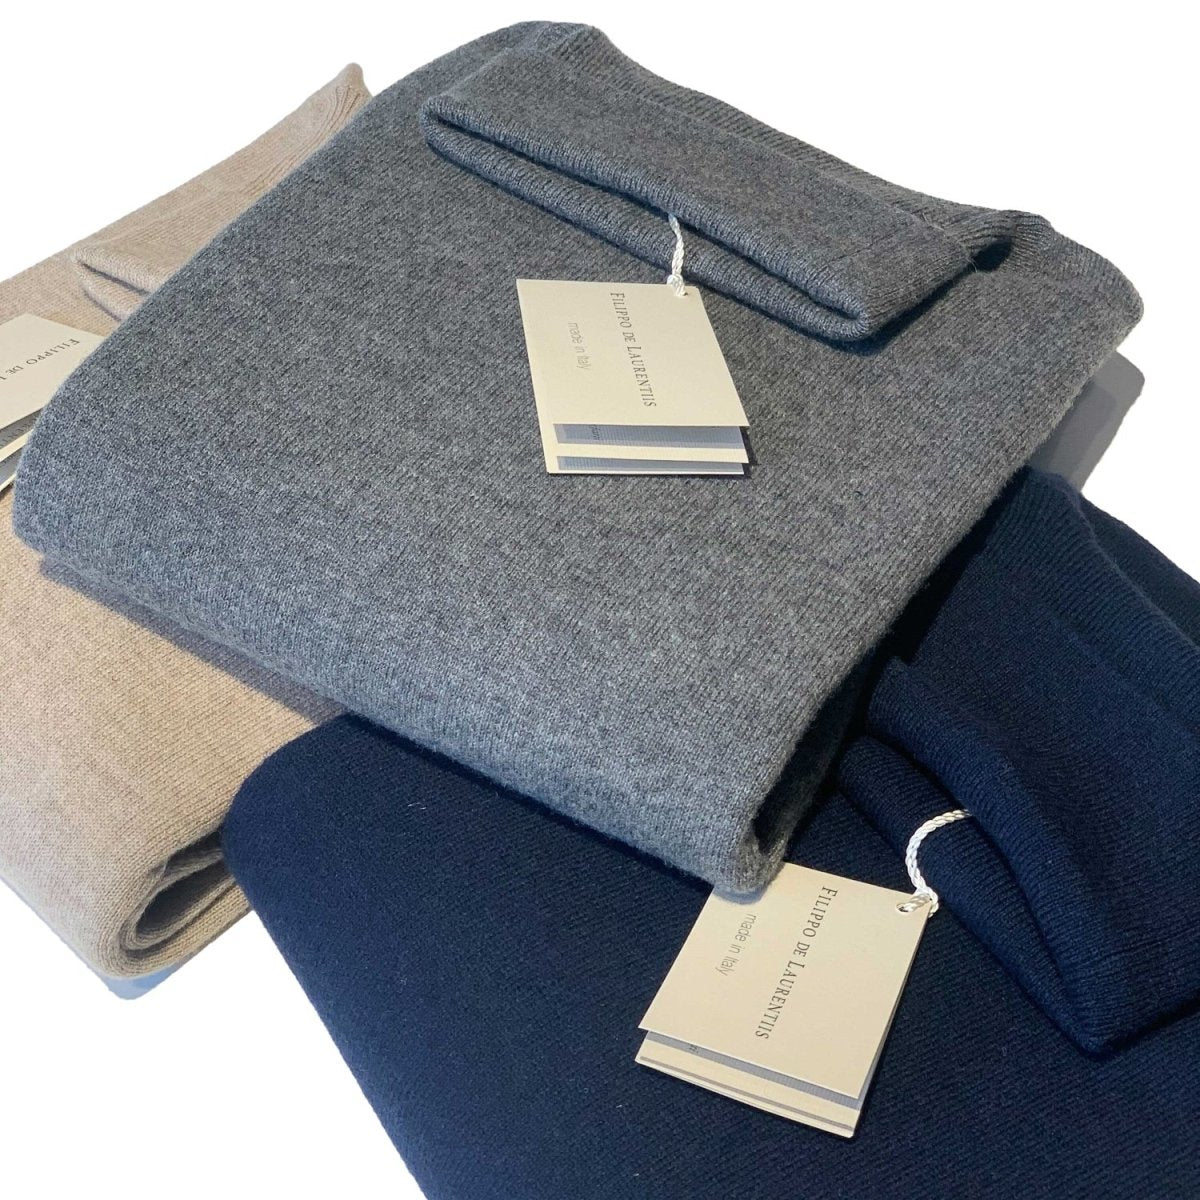 Filippo de Laurentis - Coltrui, Sand, Knitwear | NEW TAILOR Webshop